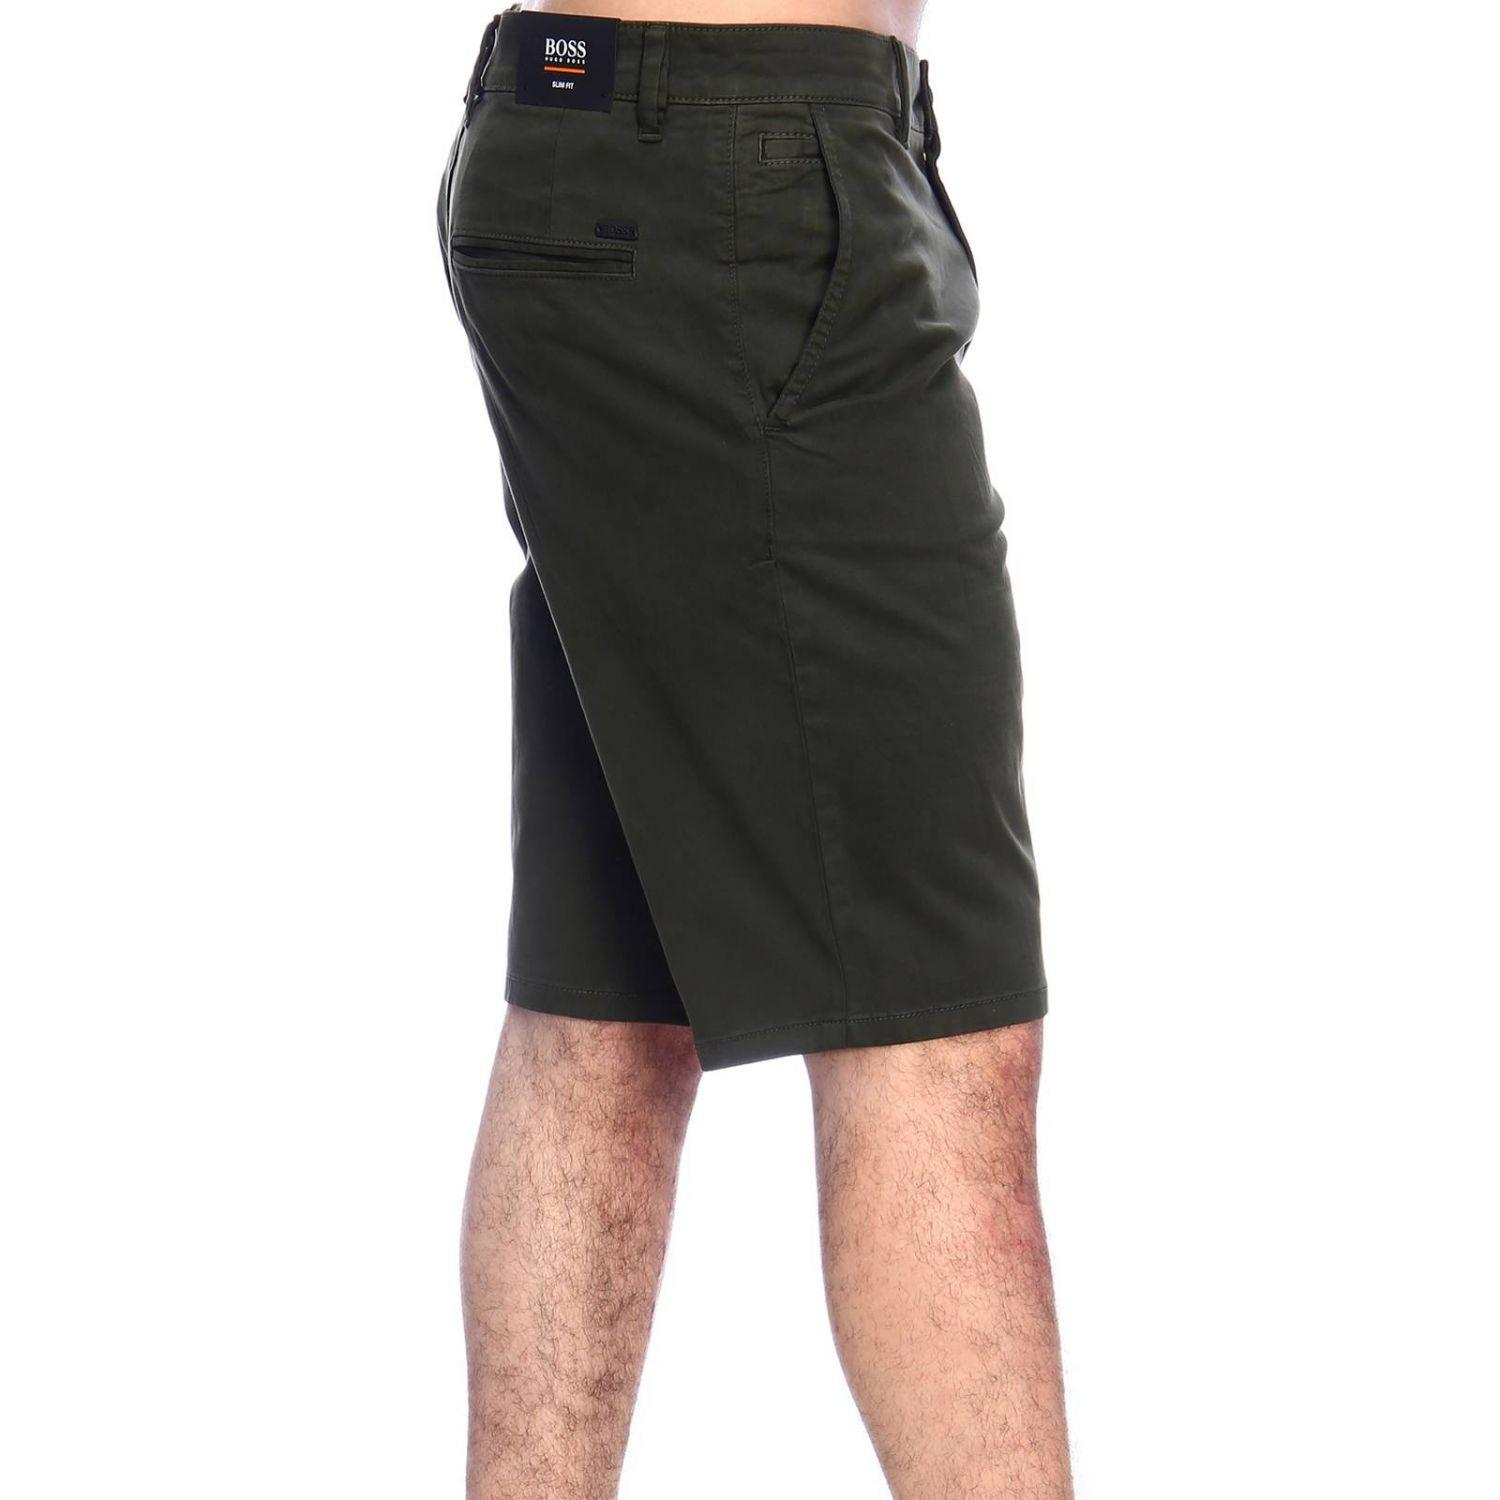 a3bb1bc7ccea ... Bermuda Shorts Men for Men - Lyst. View fullscreen